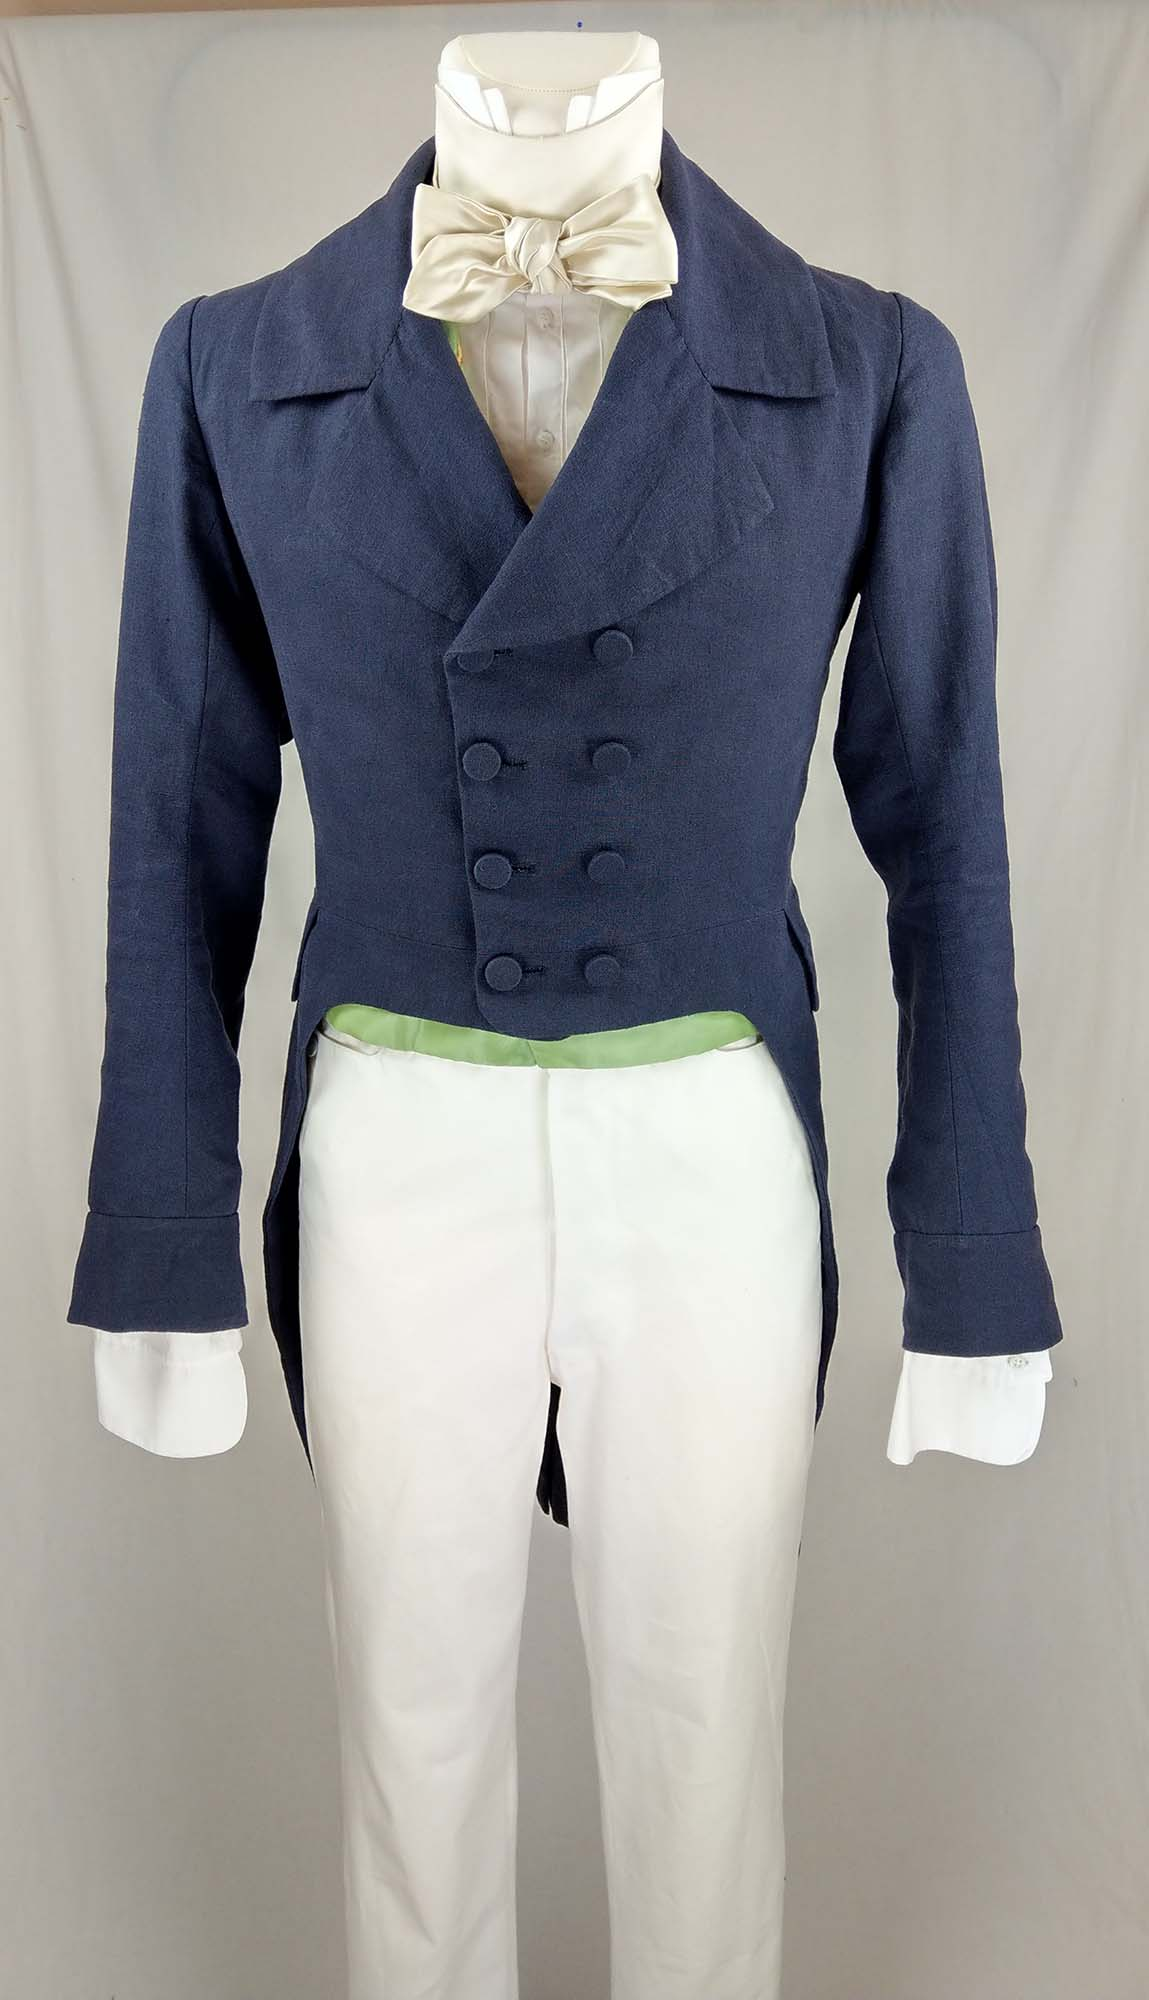 1830 Tailcoat (linen) sewing pattern #0517 Size US 34-48 (EU 44-58) PDF Download